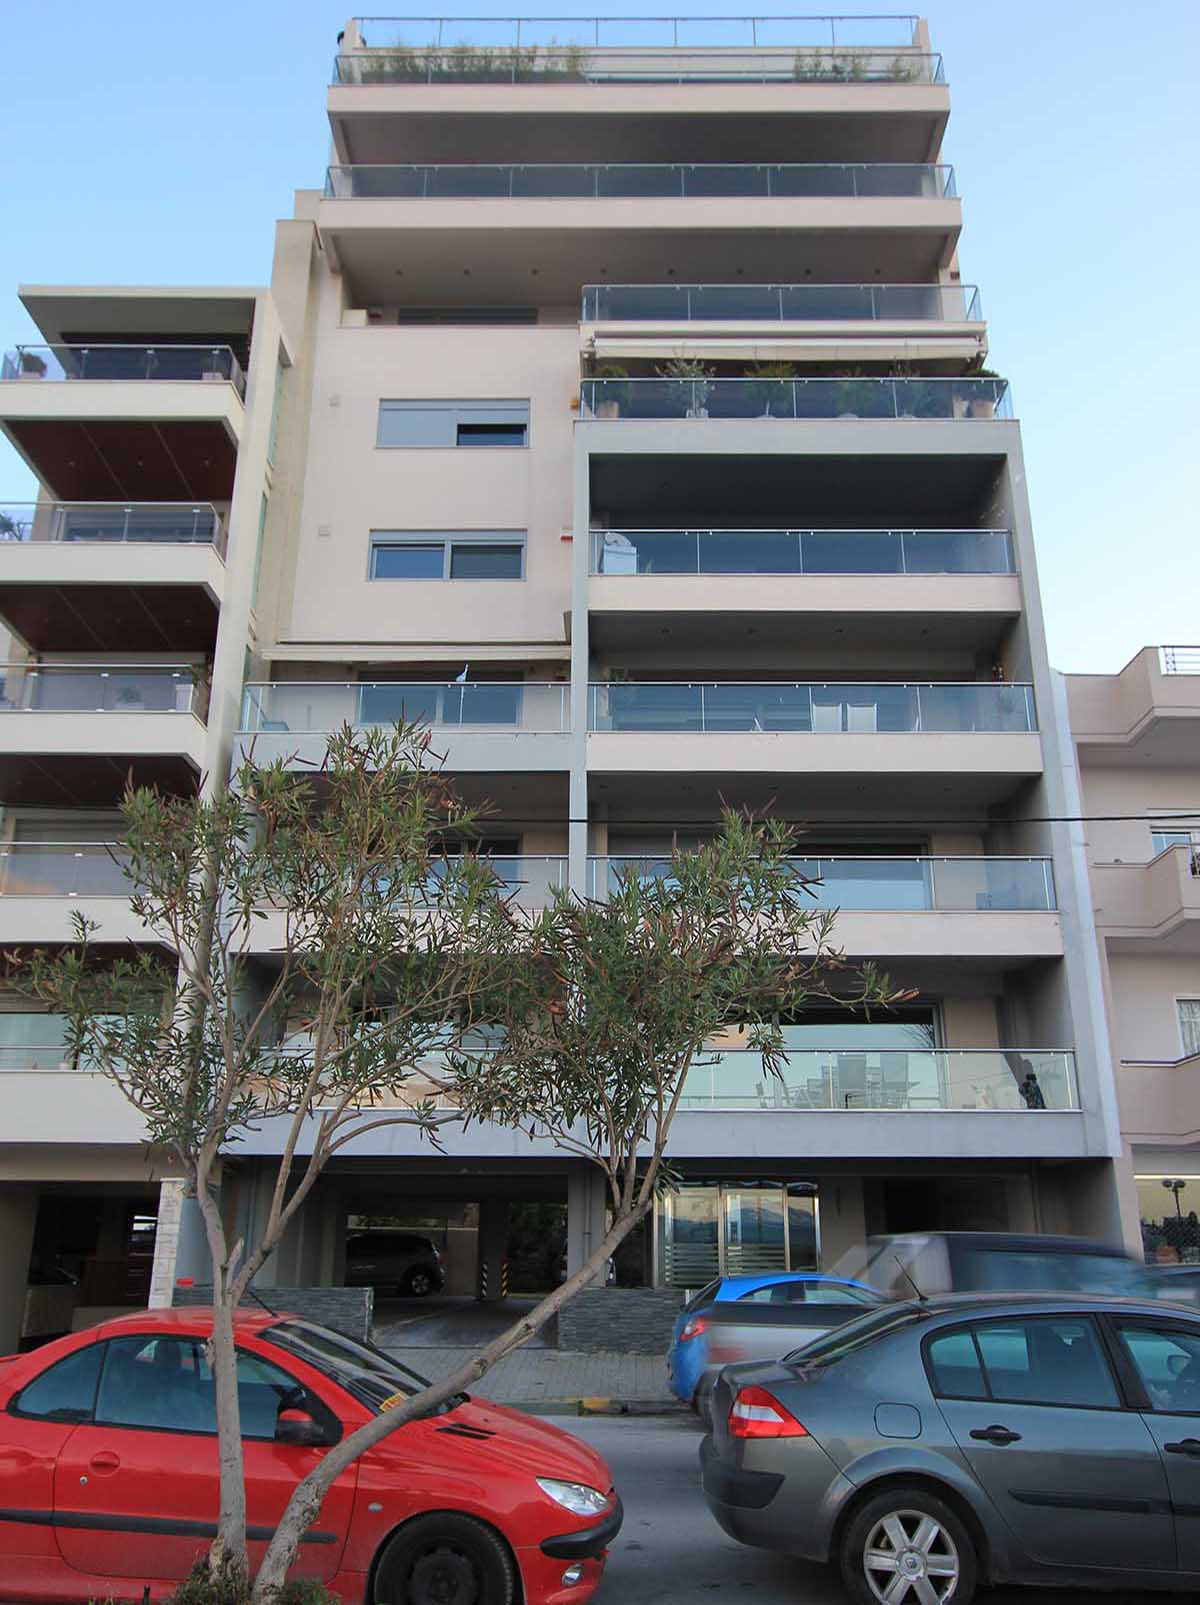 Apartment building at 26 Miaouli Street in Chalkida